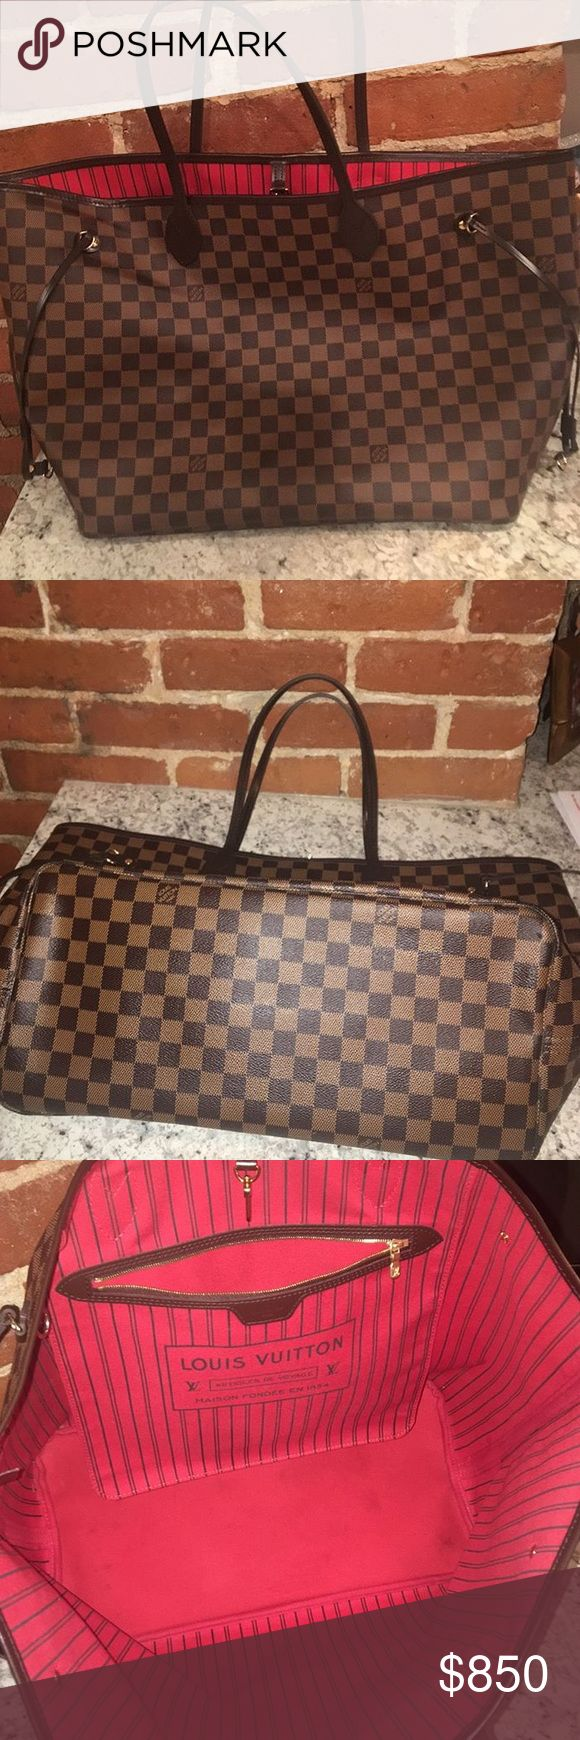 LV Neverfull GM 100% Authentic. Price listed is off posh but can be increased if wishing to purchase on posh. Comes with everything including box, except receipt. No pouch, excellent condition Louis Vuitton Bags